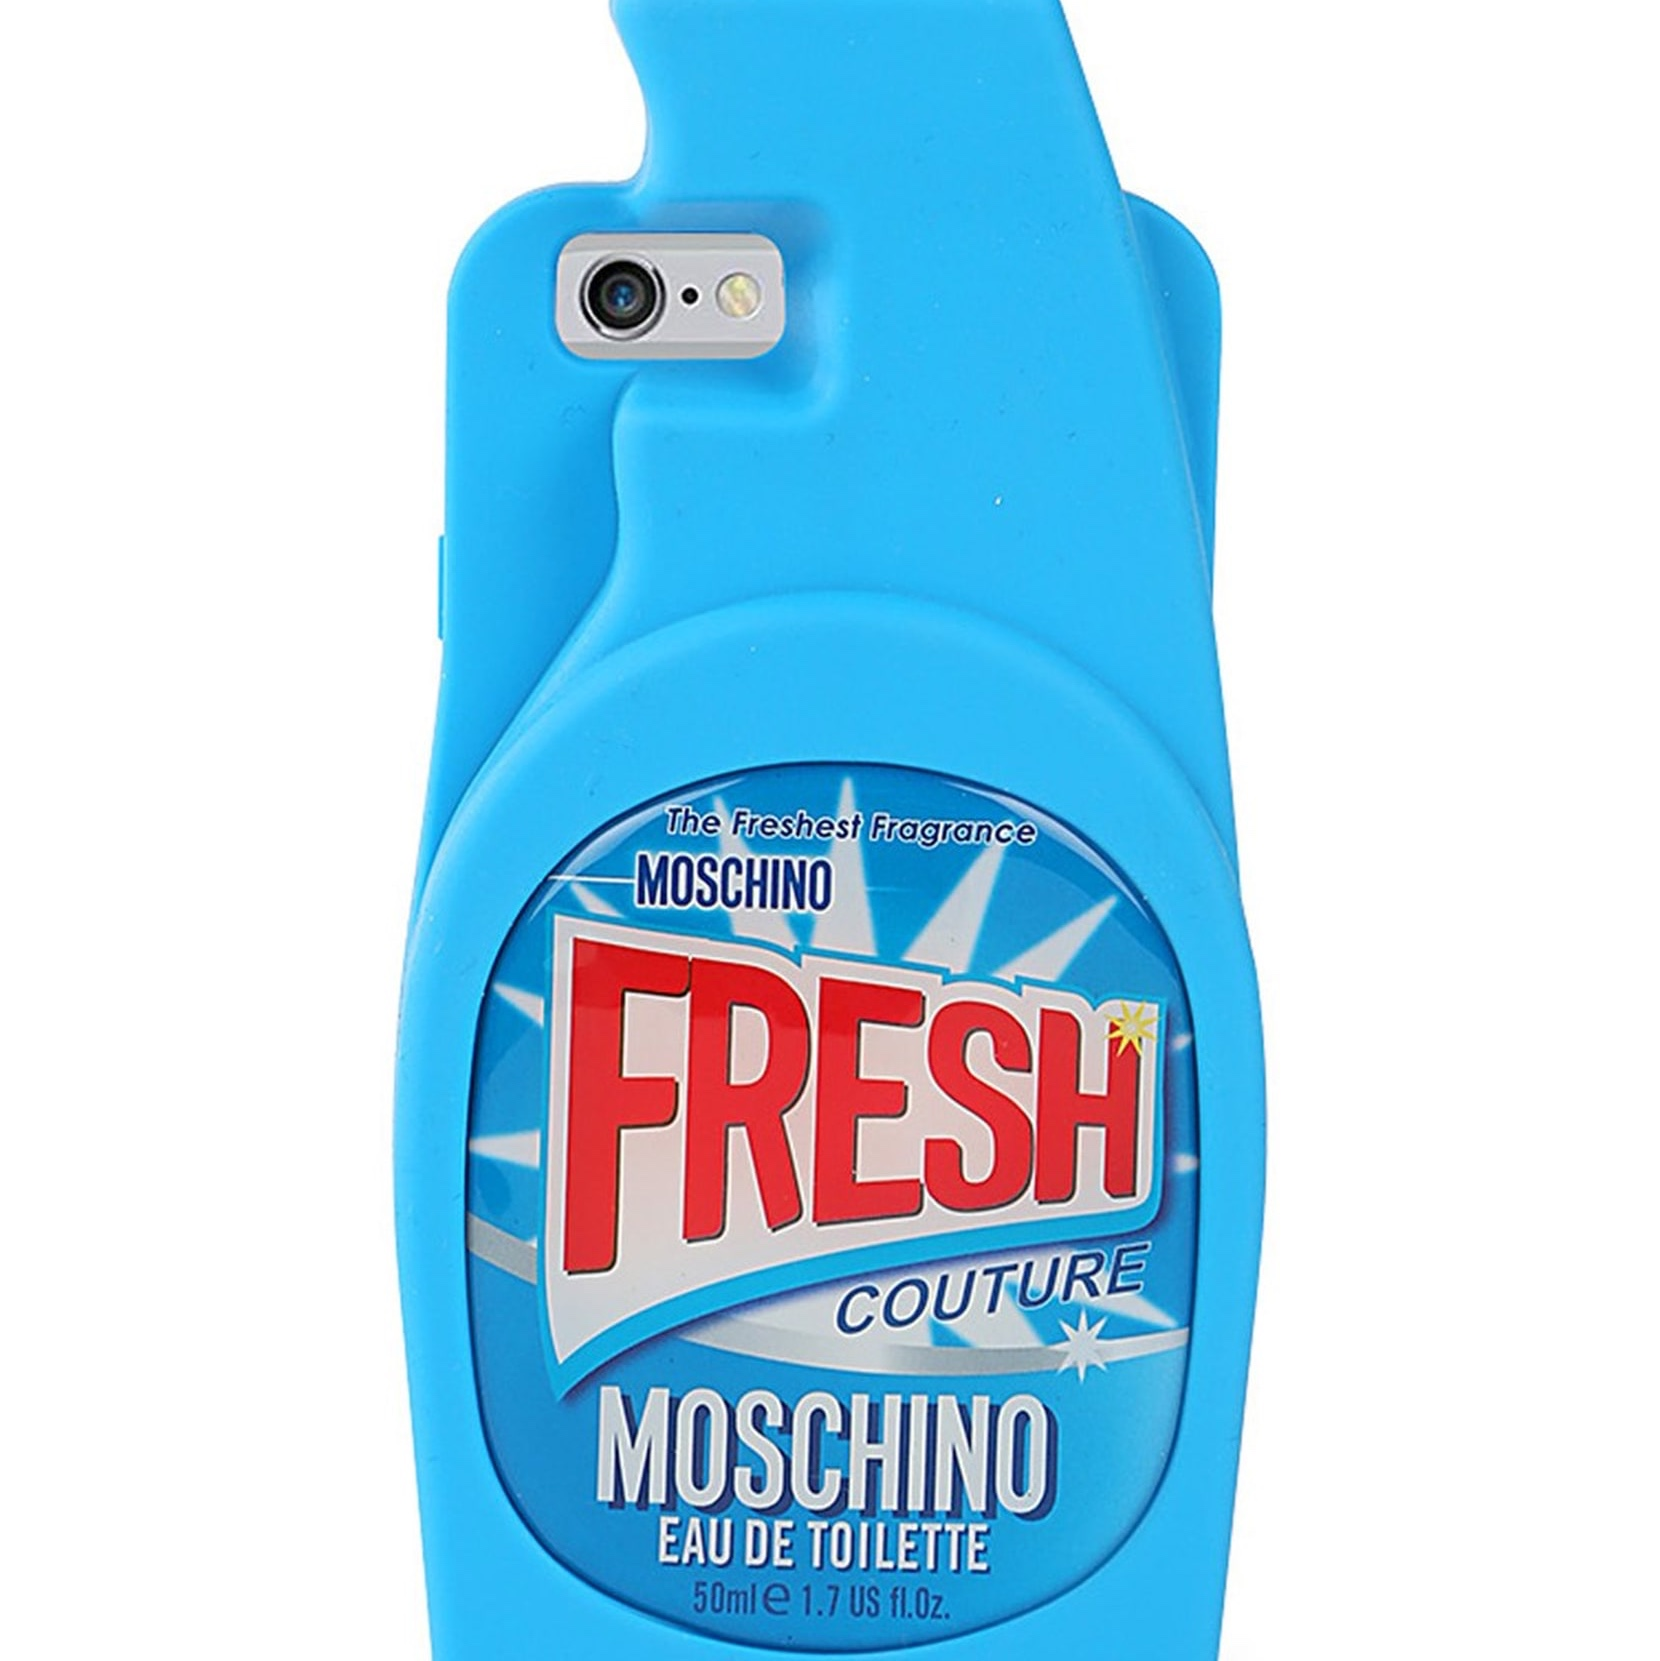 hot sale online 23957 062fe Moschino Fresh Couture Spray Bottle Phone Case. fits... - Depop